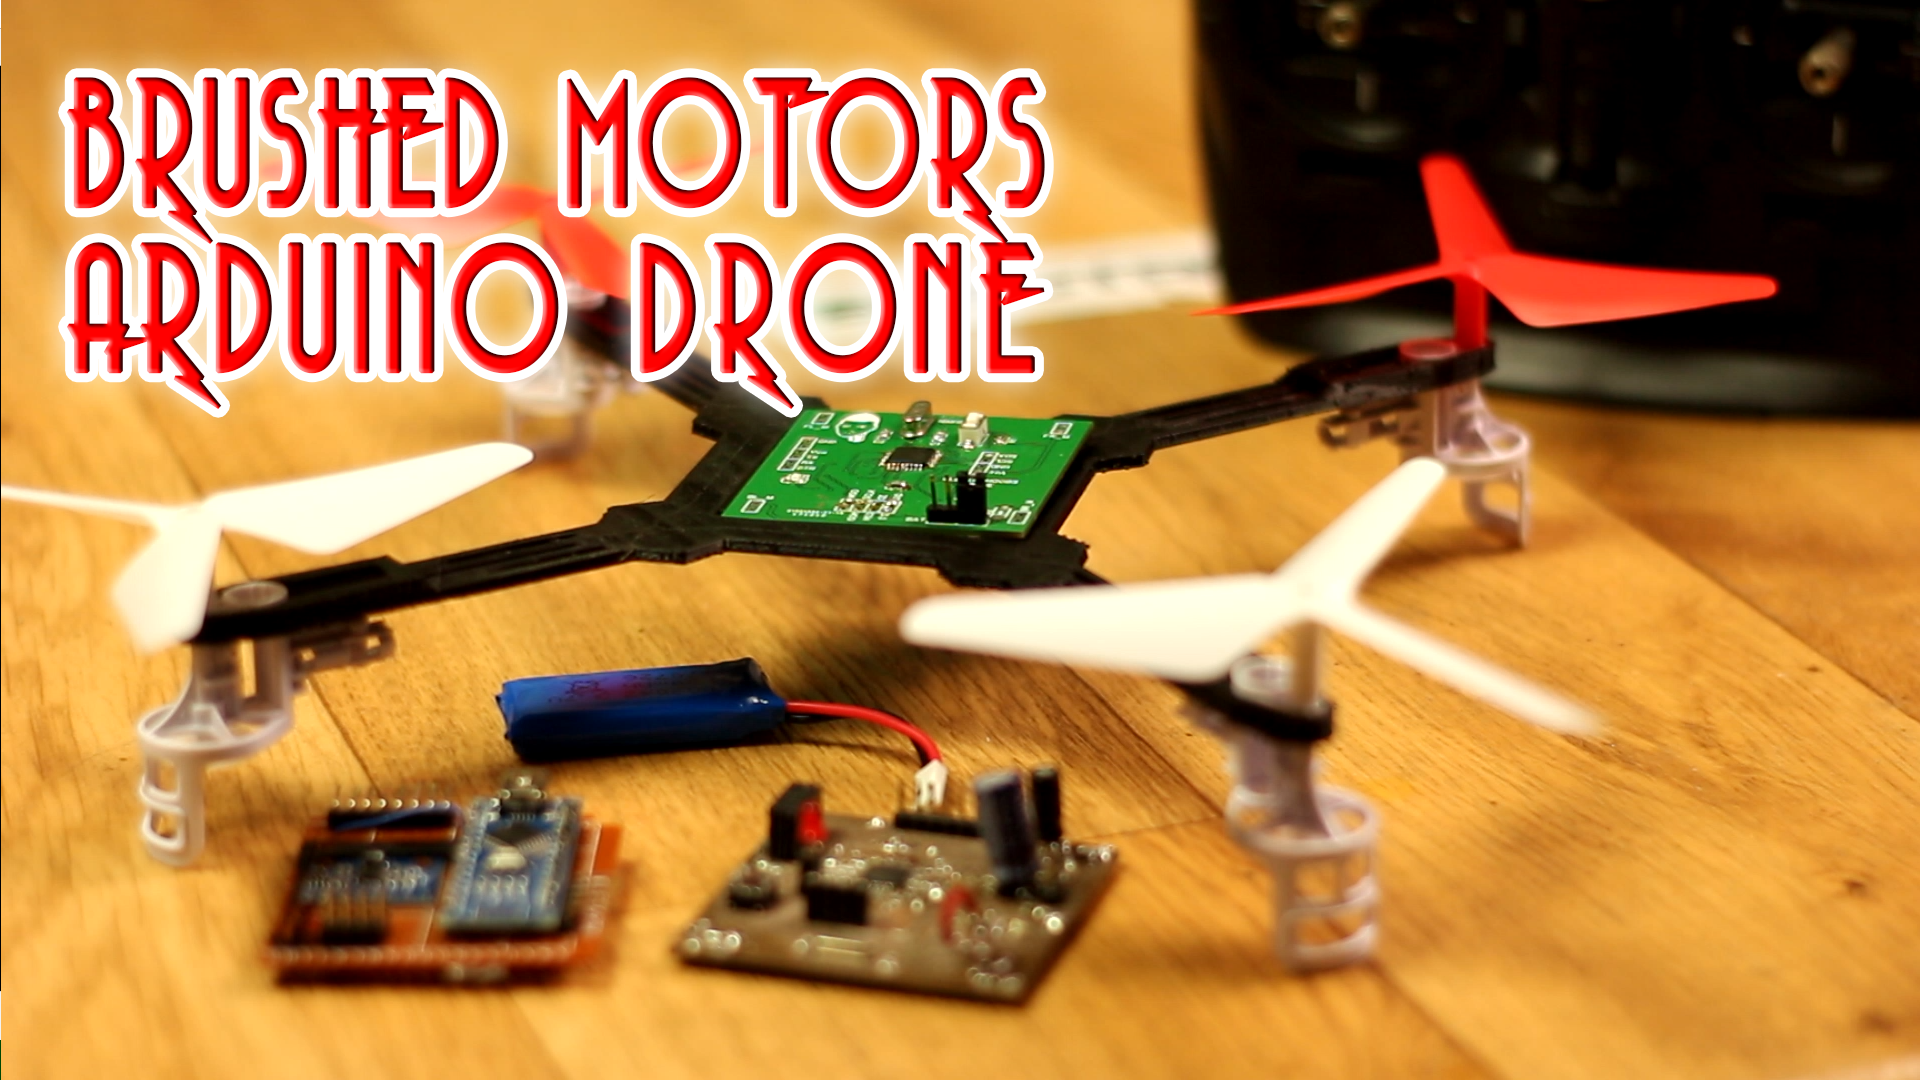 arduino drone brushed DC motors